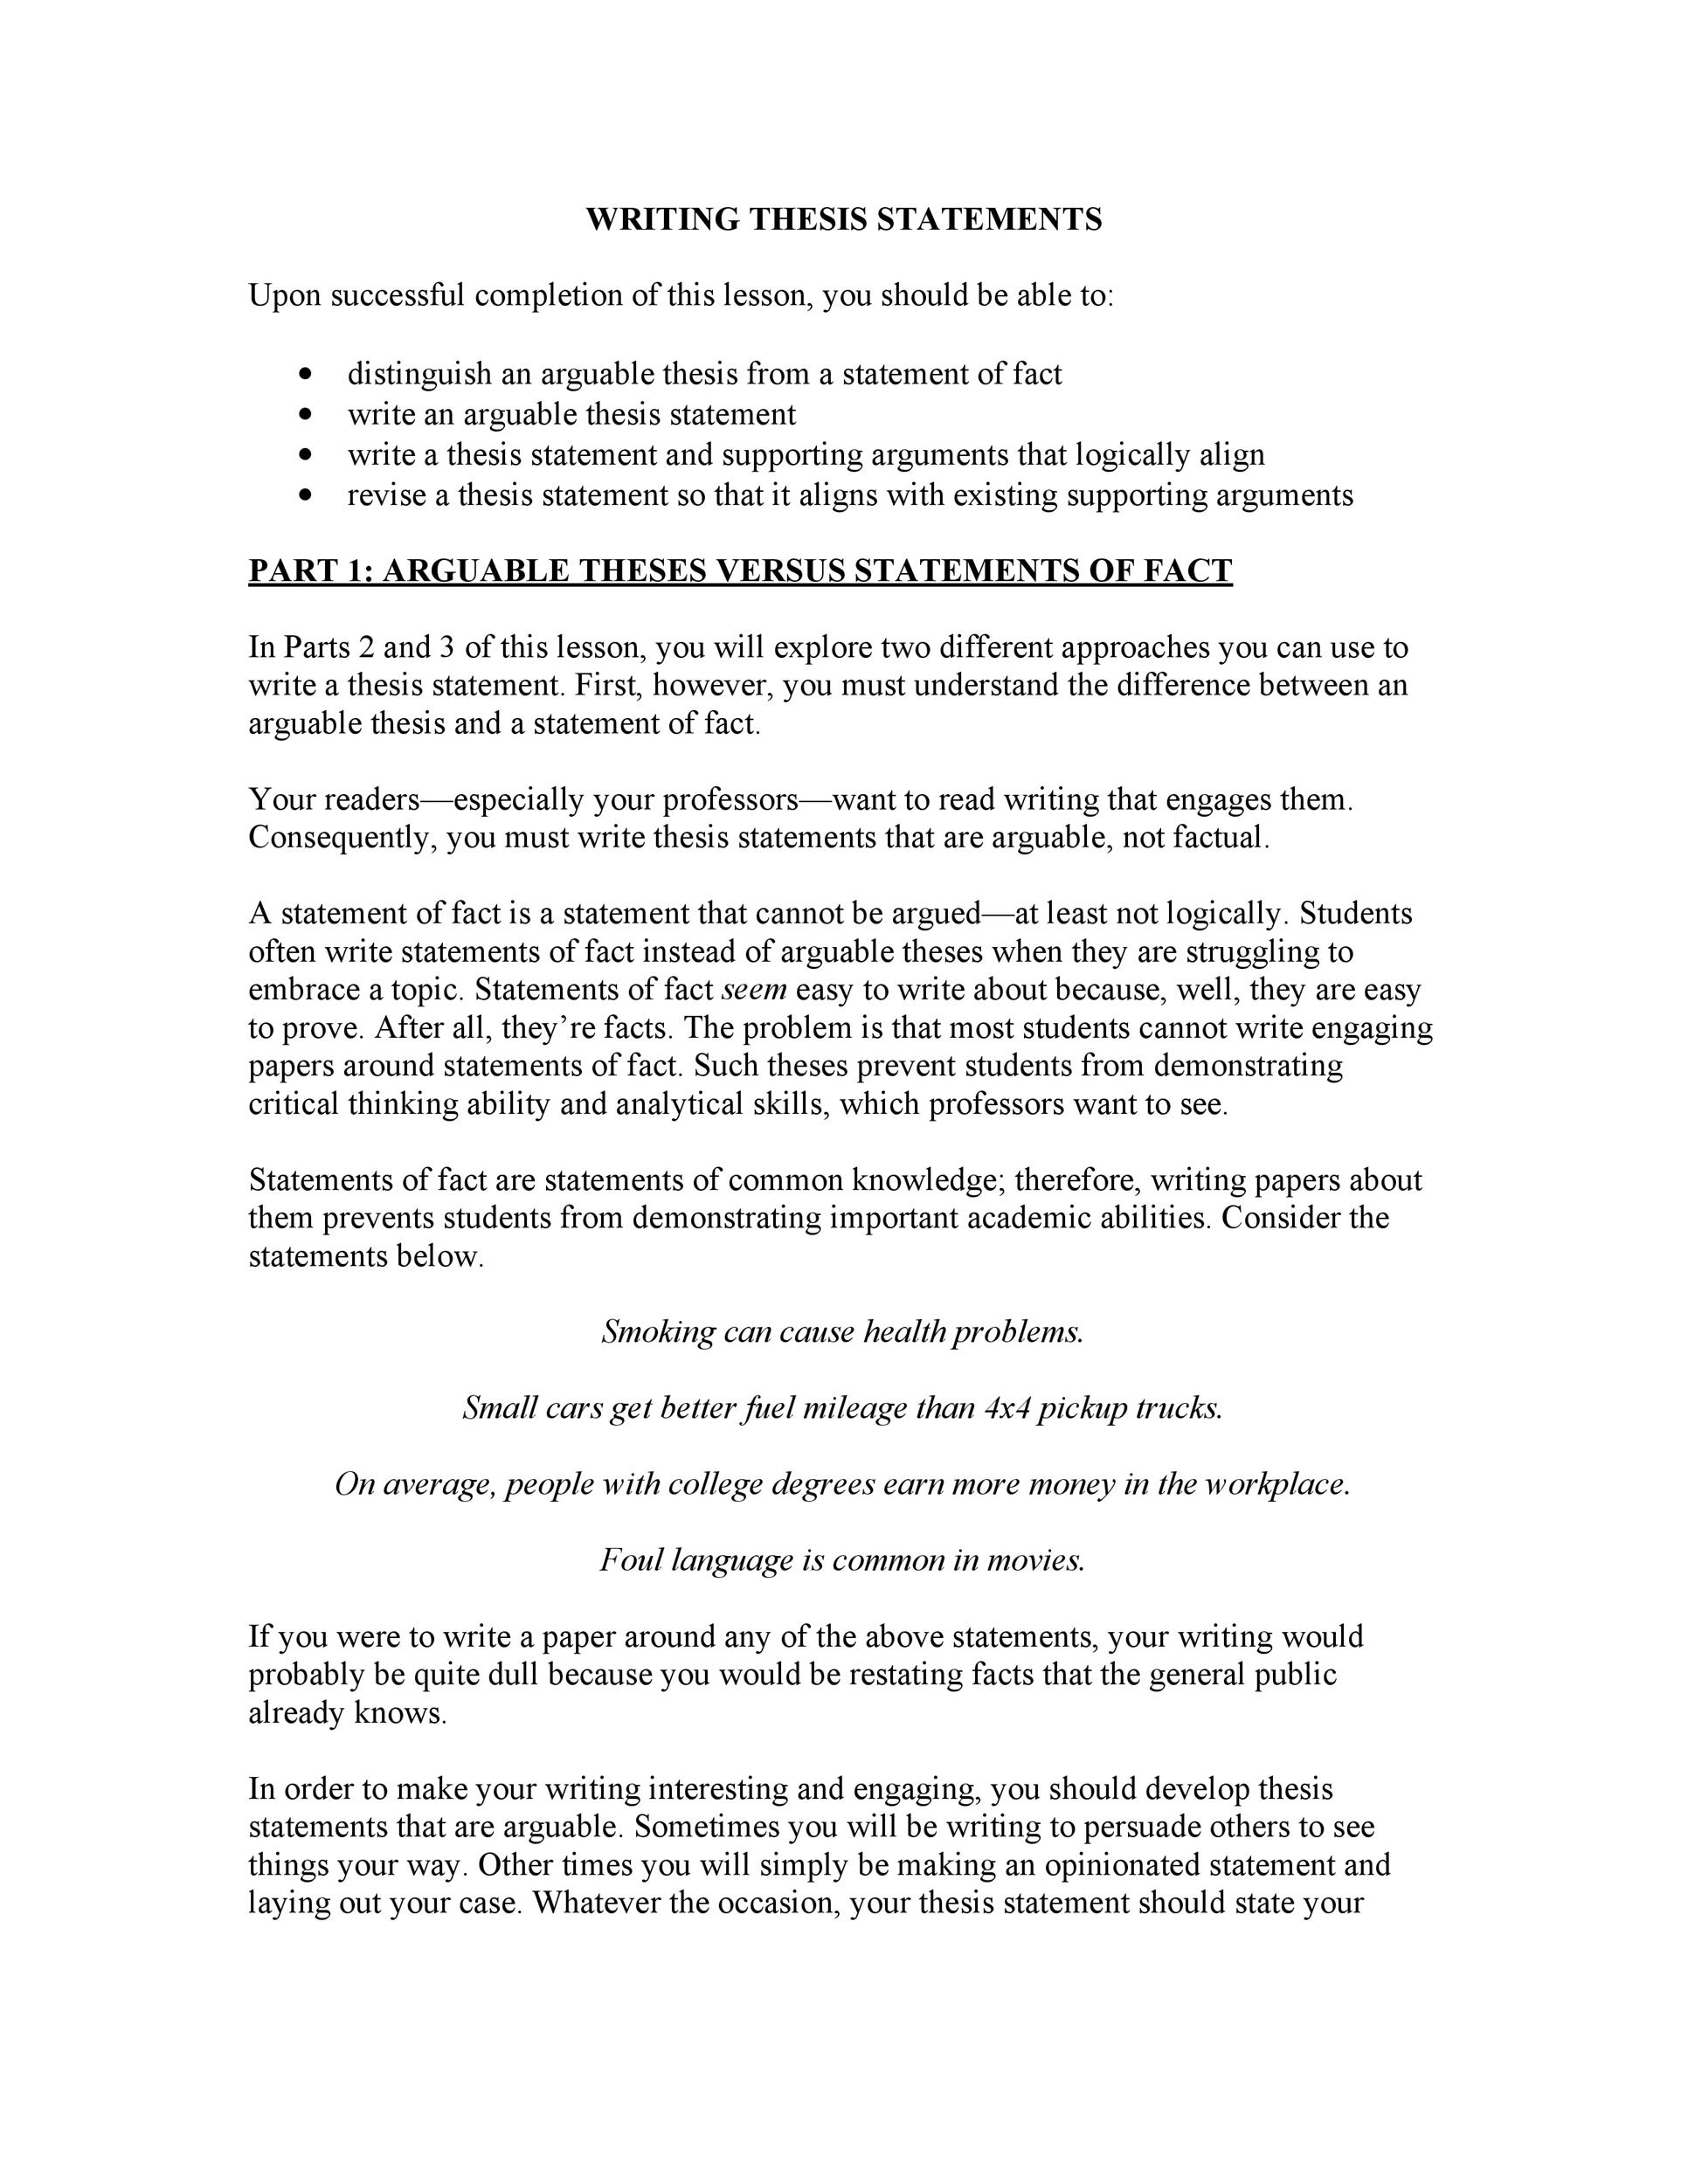 Free thesis statement template 21